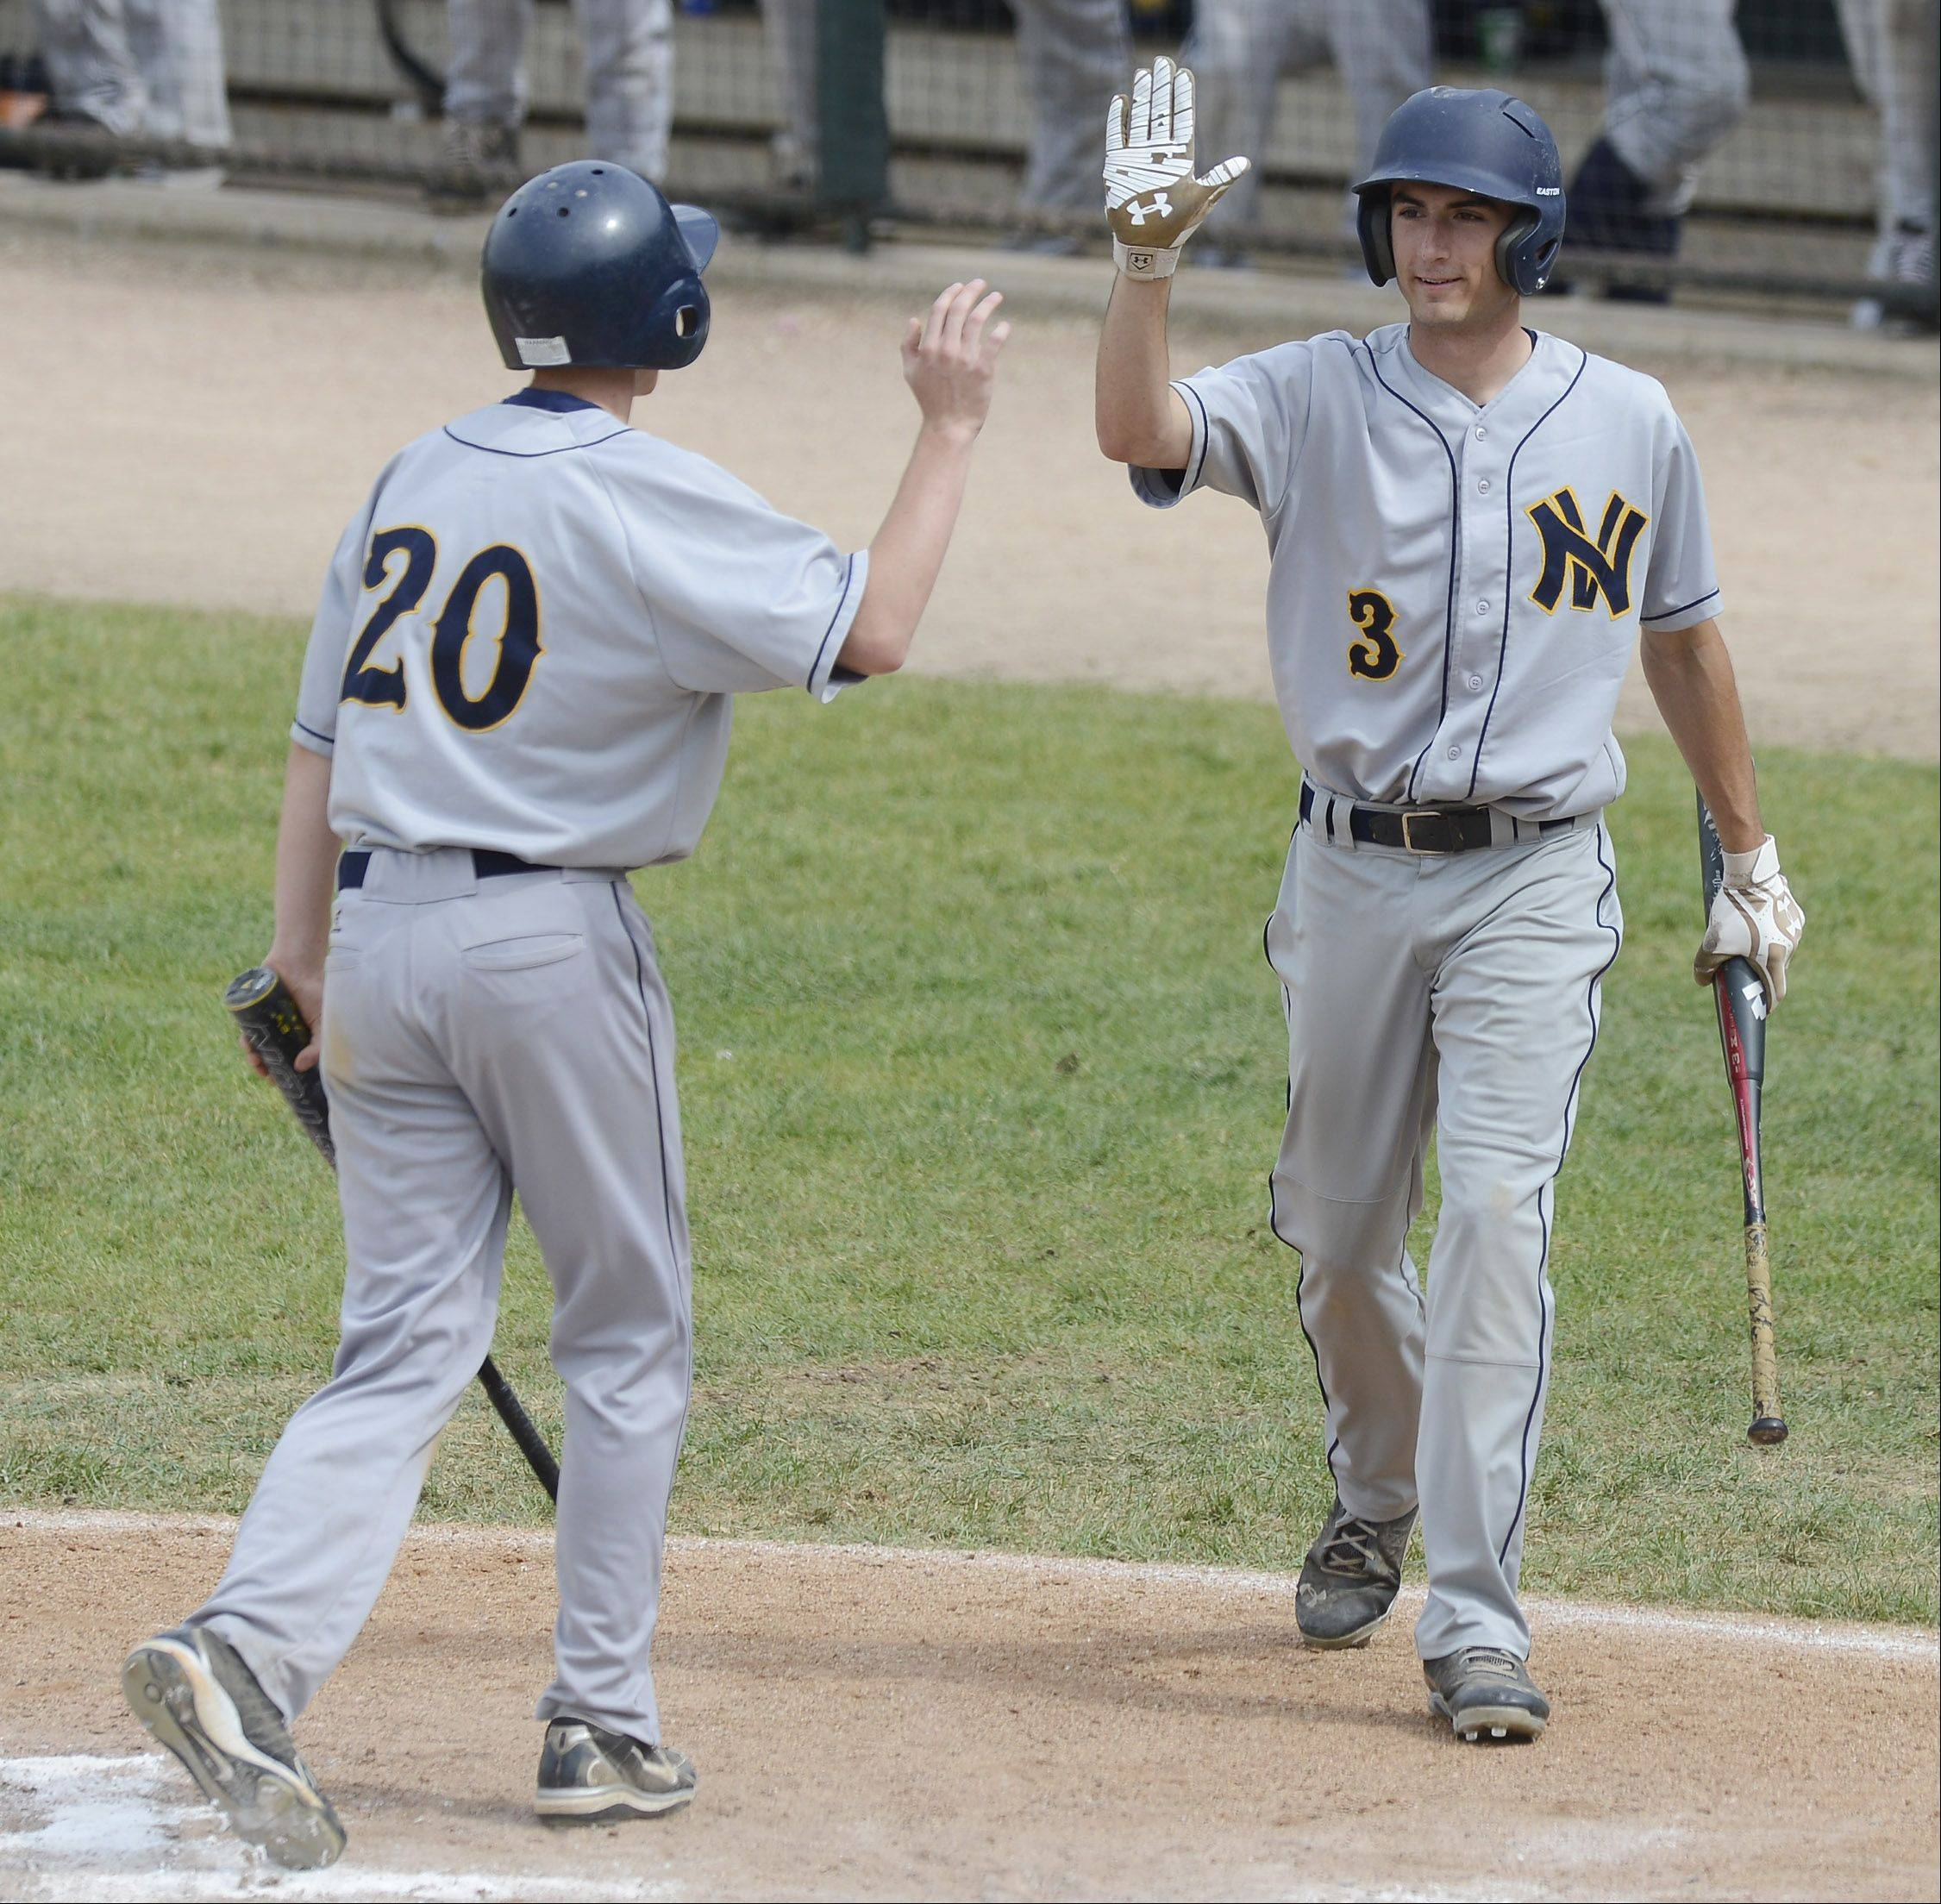 Neuqua Valley's Matt Butler gets a high-five from teammate Josh Piotrowski during the second inning of the Class 4A baseball third-place game at Silver Cross Field in Joliet on Saturday.